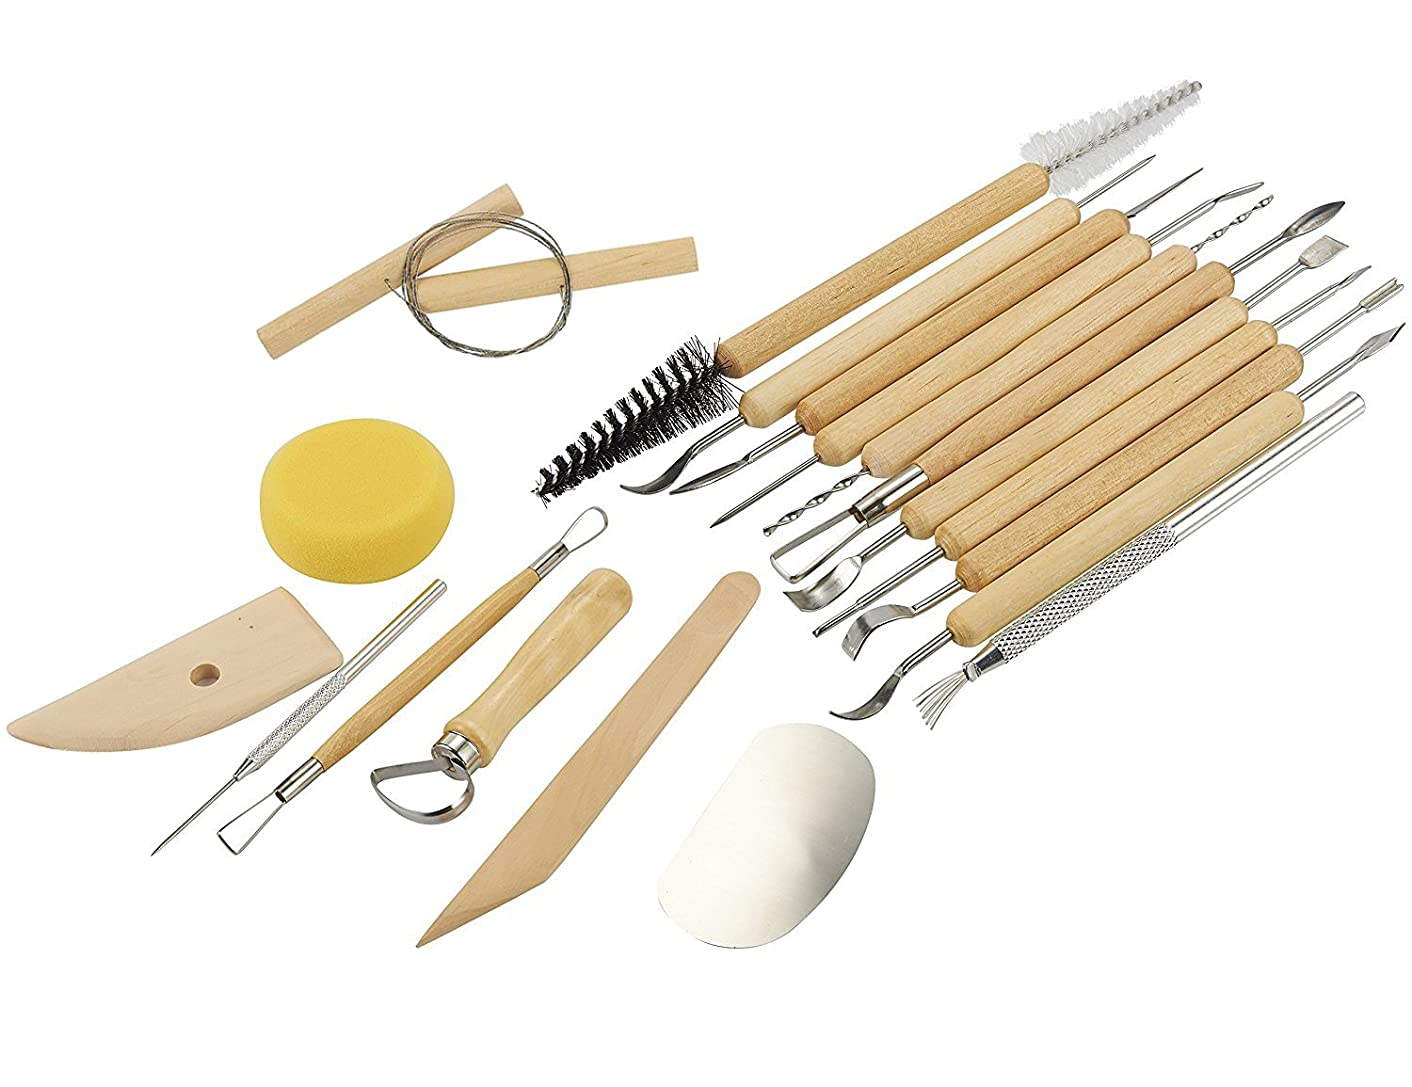 Sculpting Tools - 19-Piece Pottery Carving Tools Set - Double-Sided Ceramic Modeling Tools for Clay and Wood Sculptures - for Beginners Professional Art Crafts - Steel and Hard Wood Handles